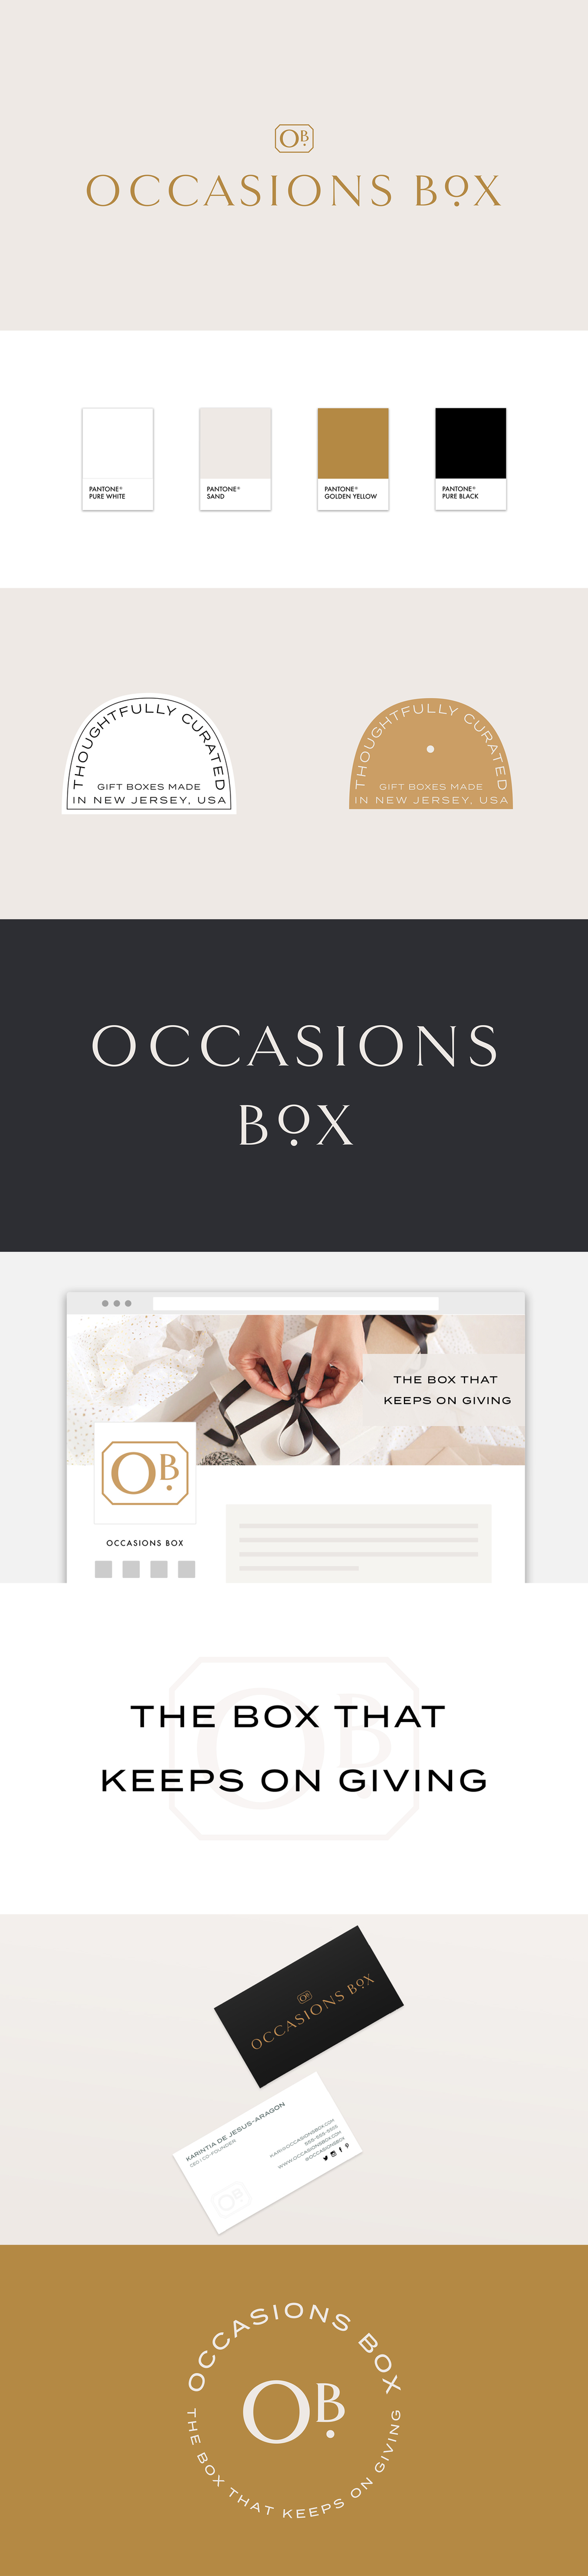 Occasions Box | Brand Identity Design for a Curated, Luxurious, High End Gift Box Service | Designed by Reux Design Co.